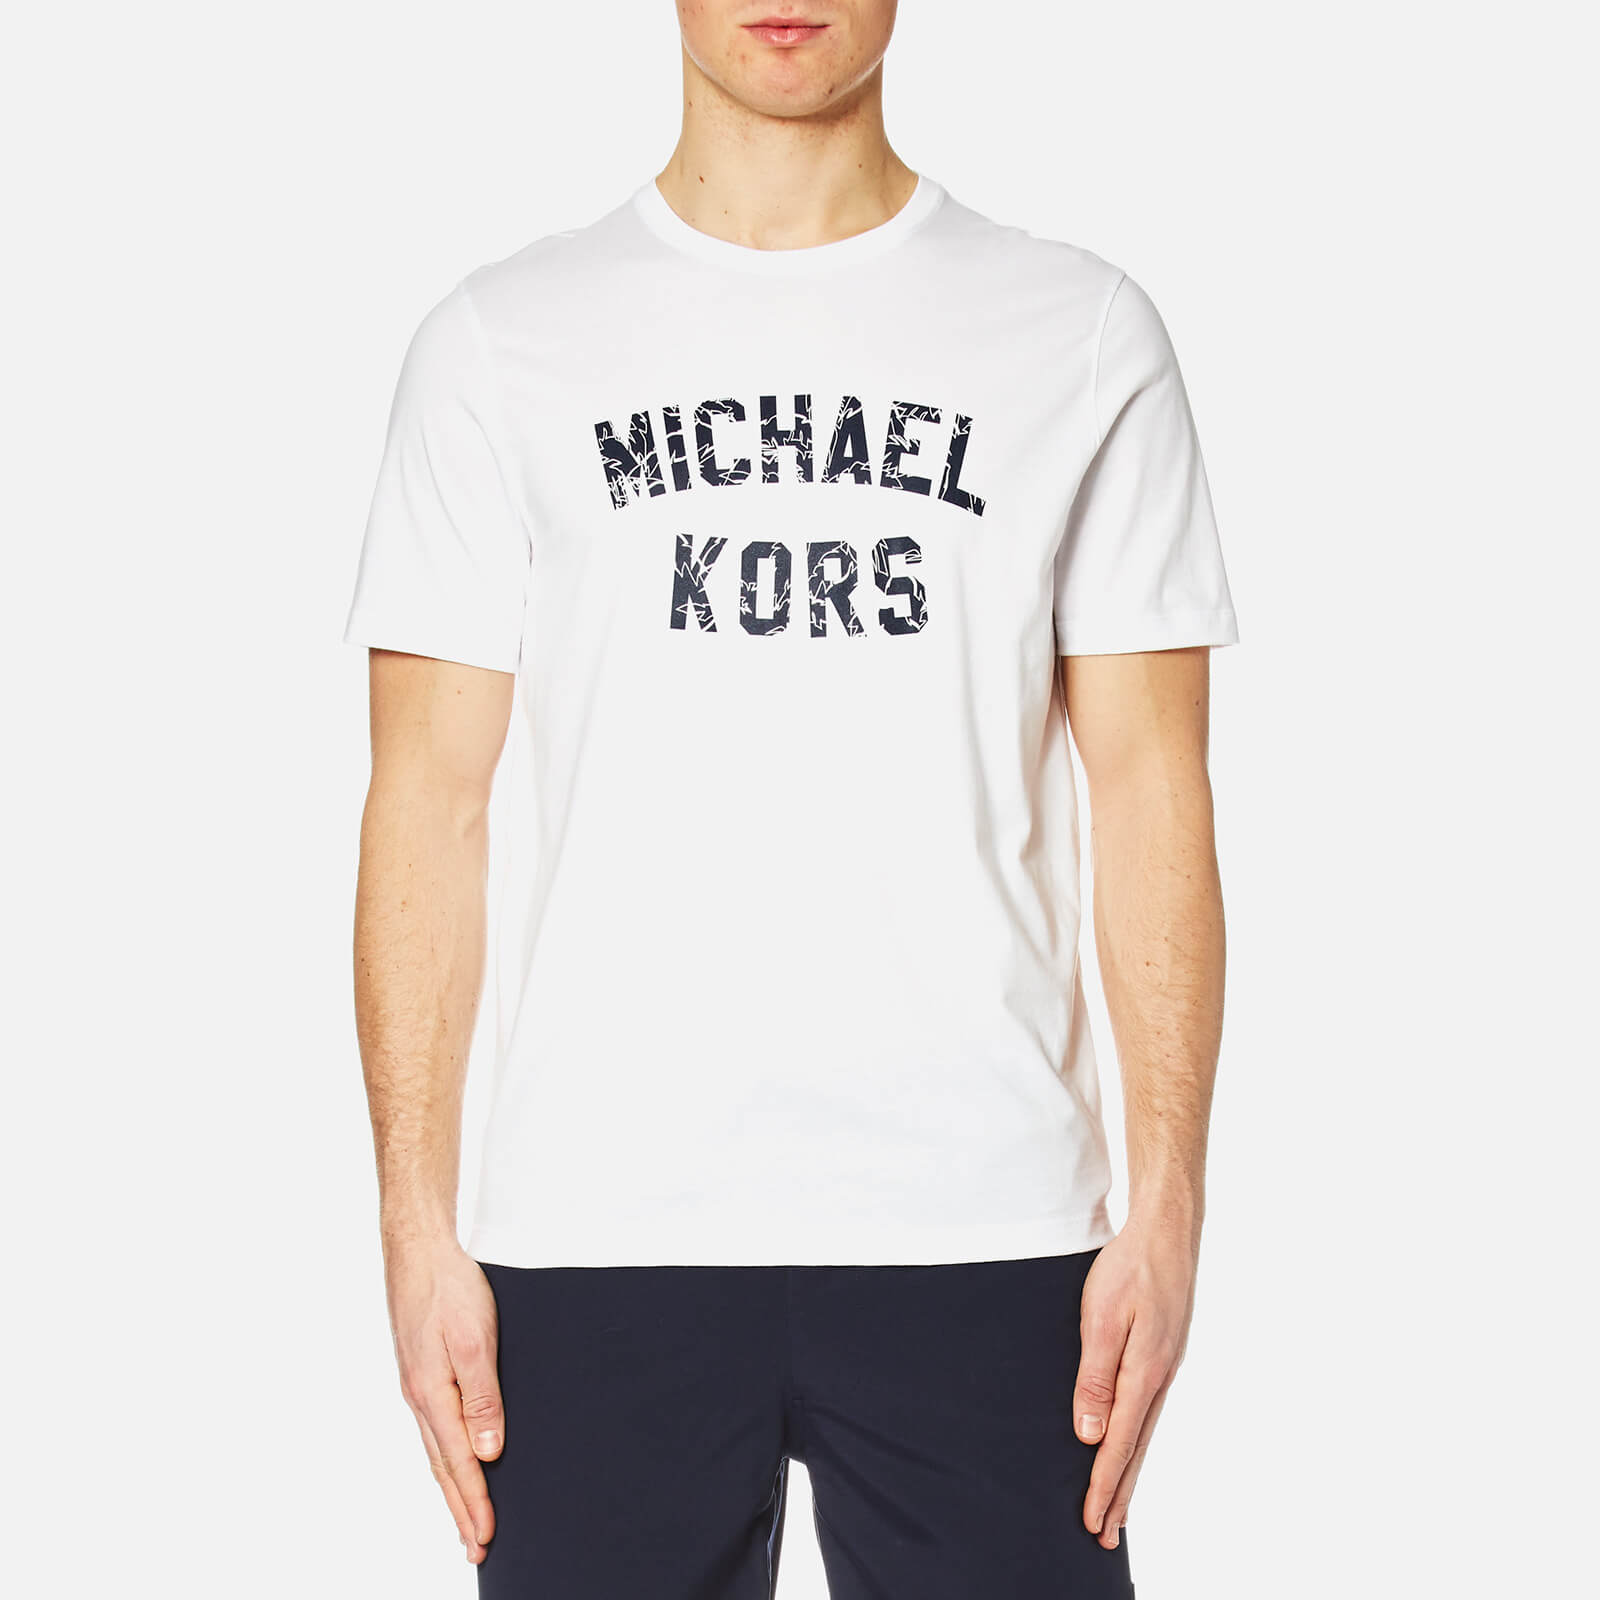 6a8503f7 Michael Kors Men's Varsity Text Graphic Michael Kors Logo T-Shirt - White -  Free UK Delivery over £50